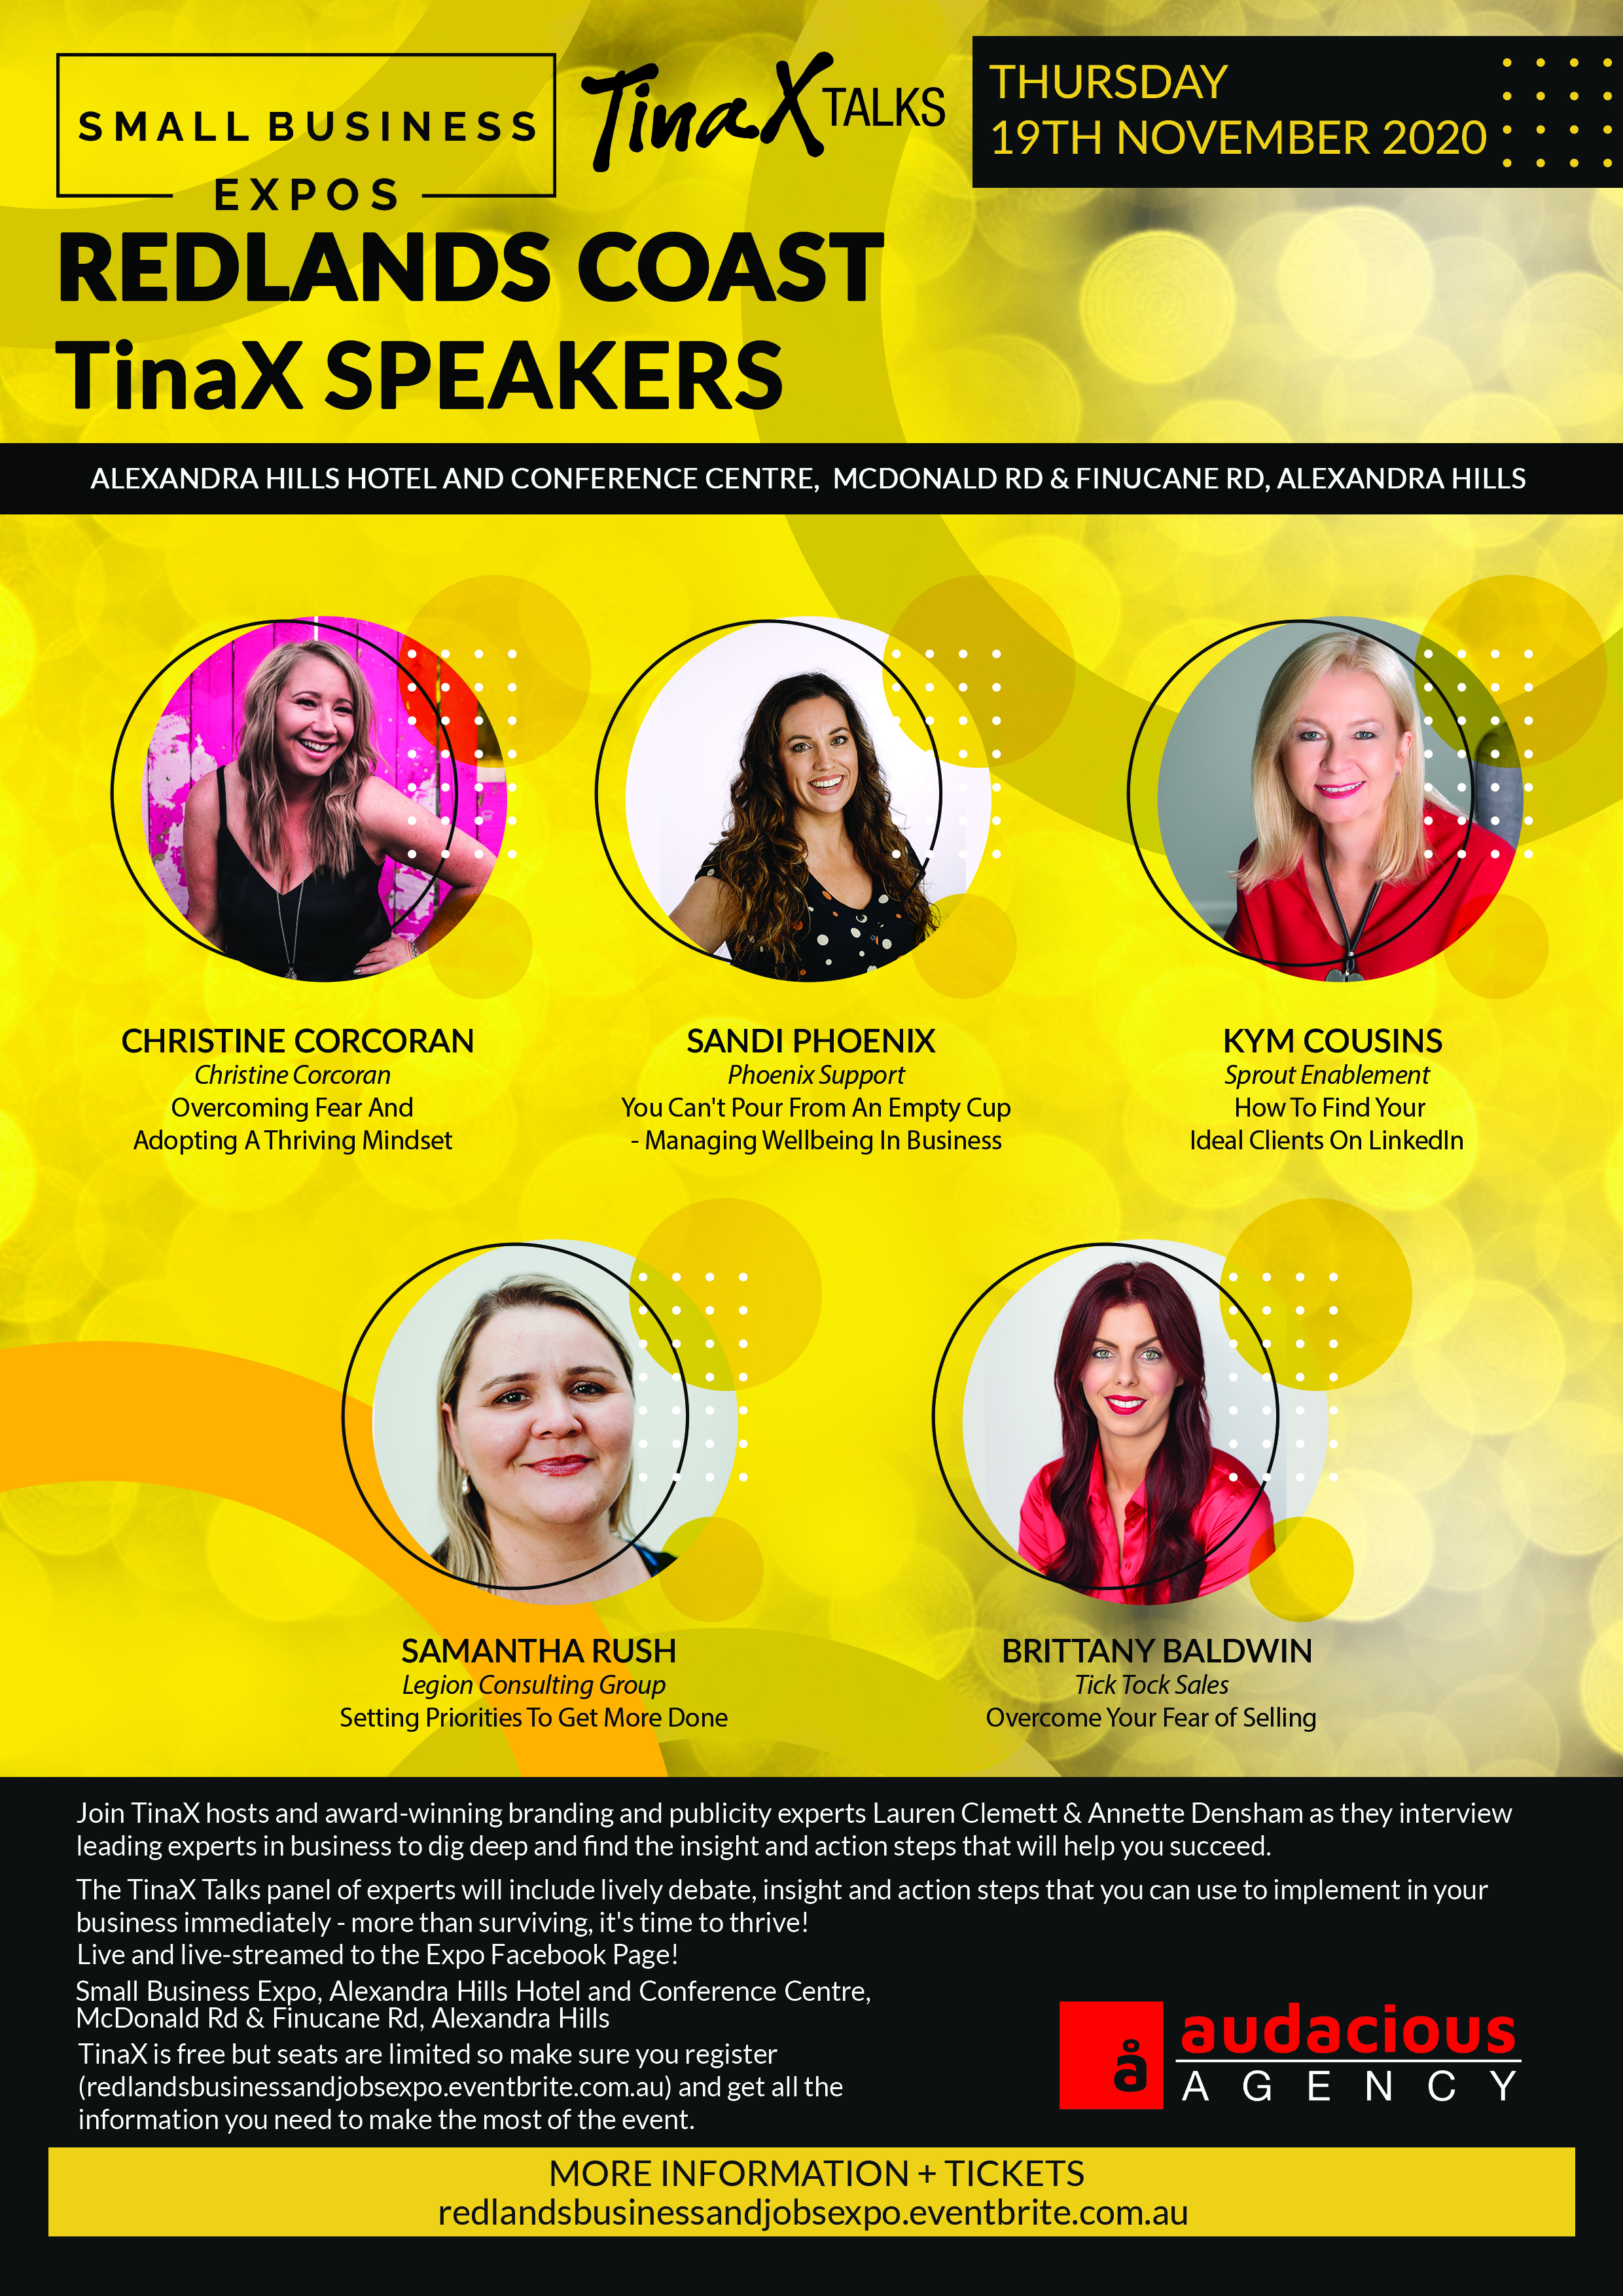 Business Expos | Brisbane | Gold Coast | Small Business Expos | Redlands Coast Tinax Flyer